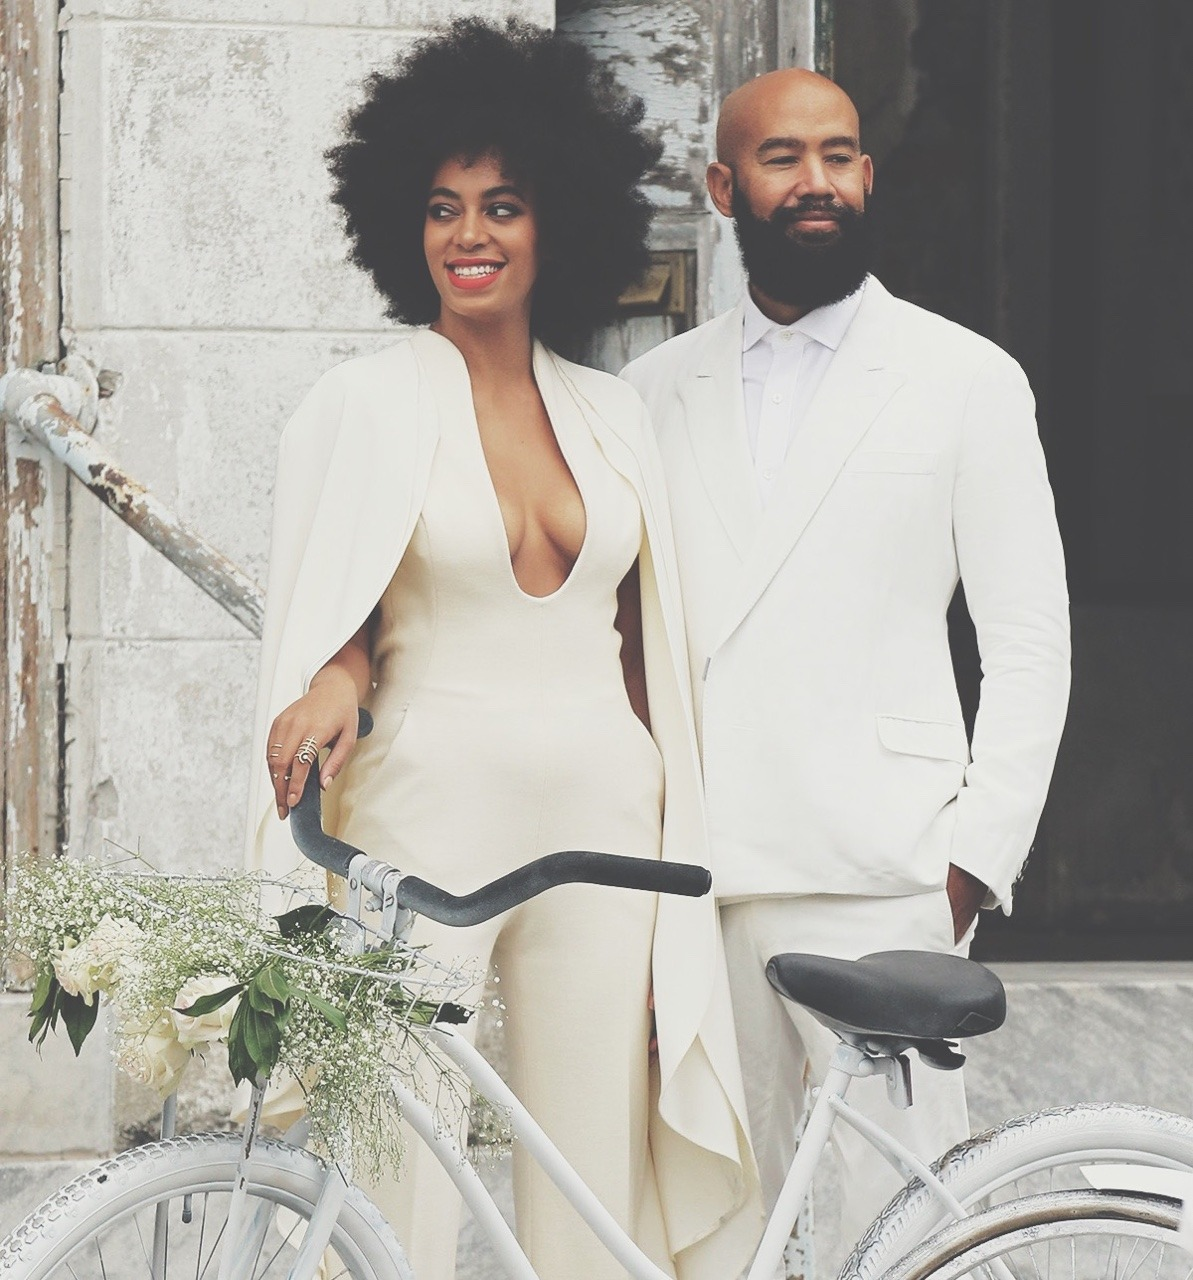 JUST MARRIED Solange And Alan Ferguson THE UNBOTHERED